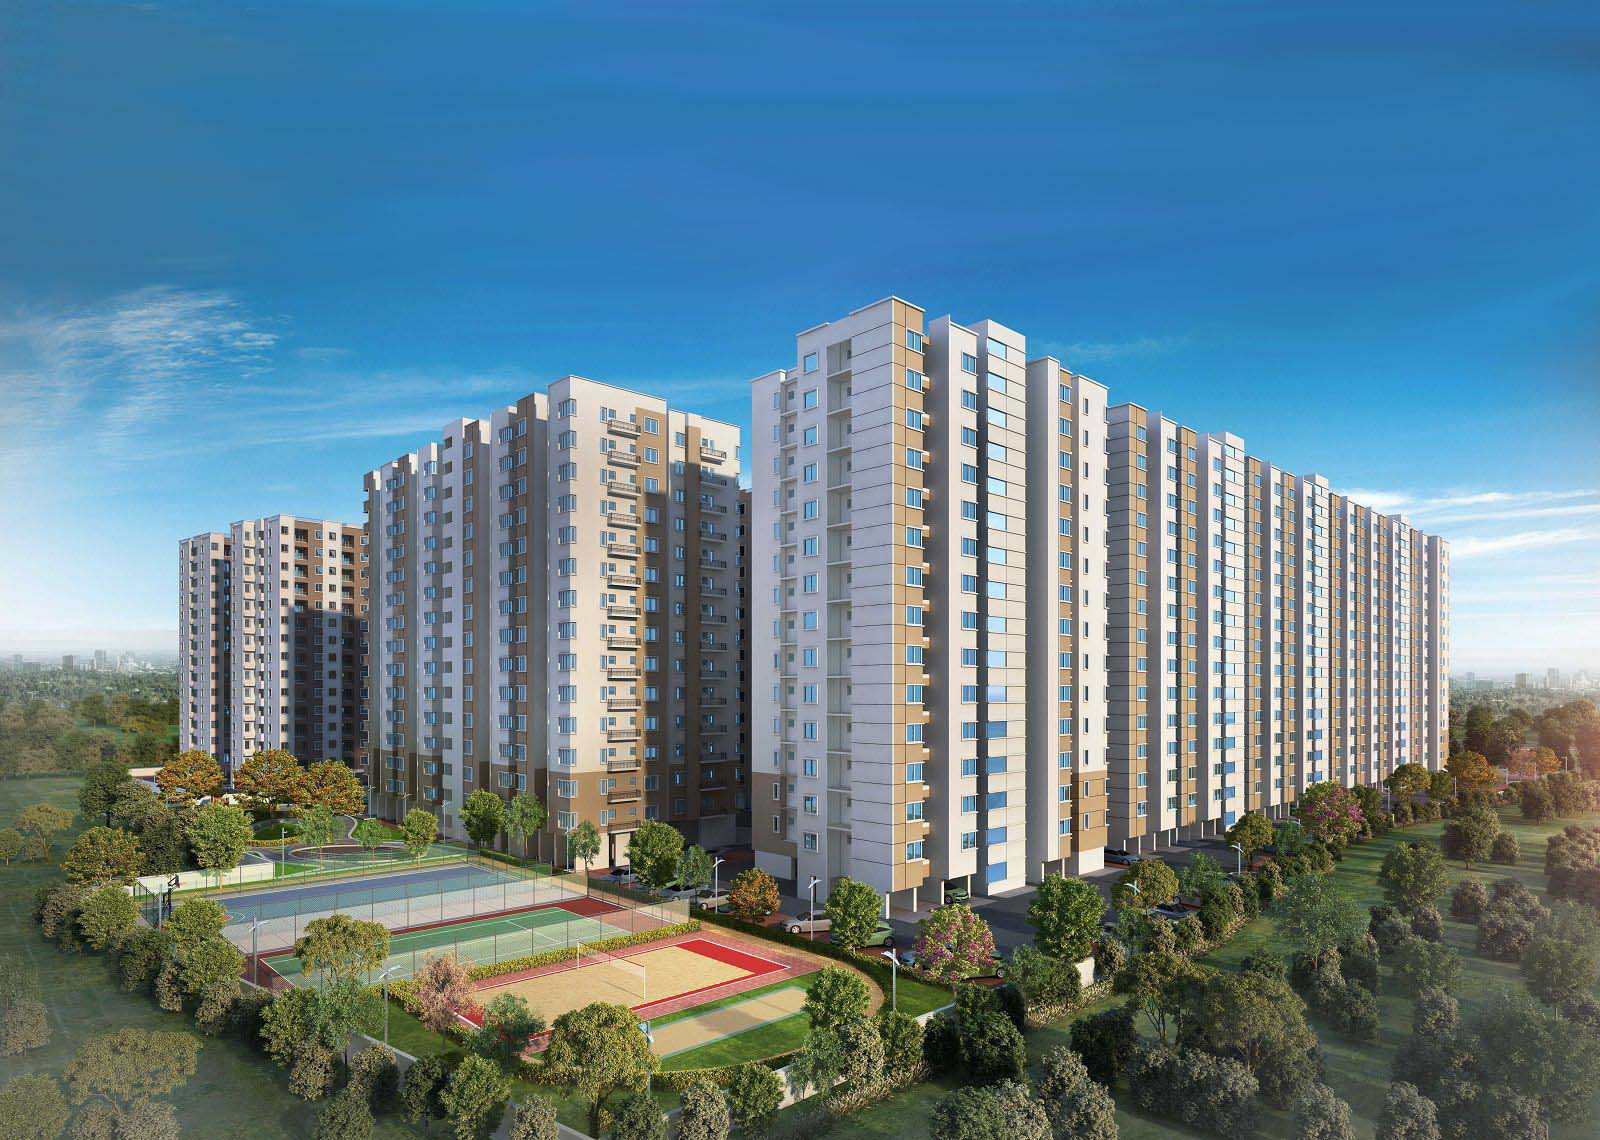 Flats for sale in Chennai Radial Road